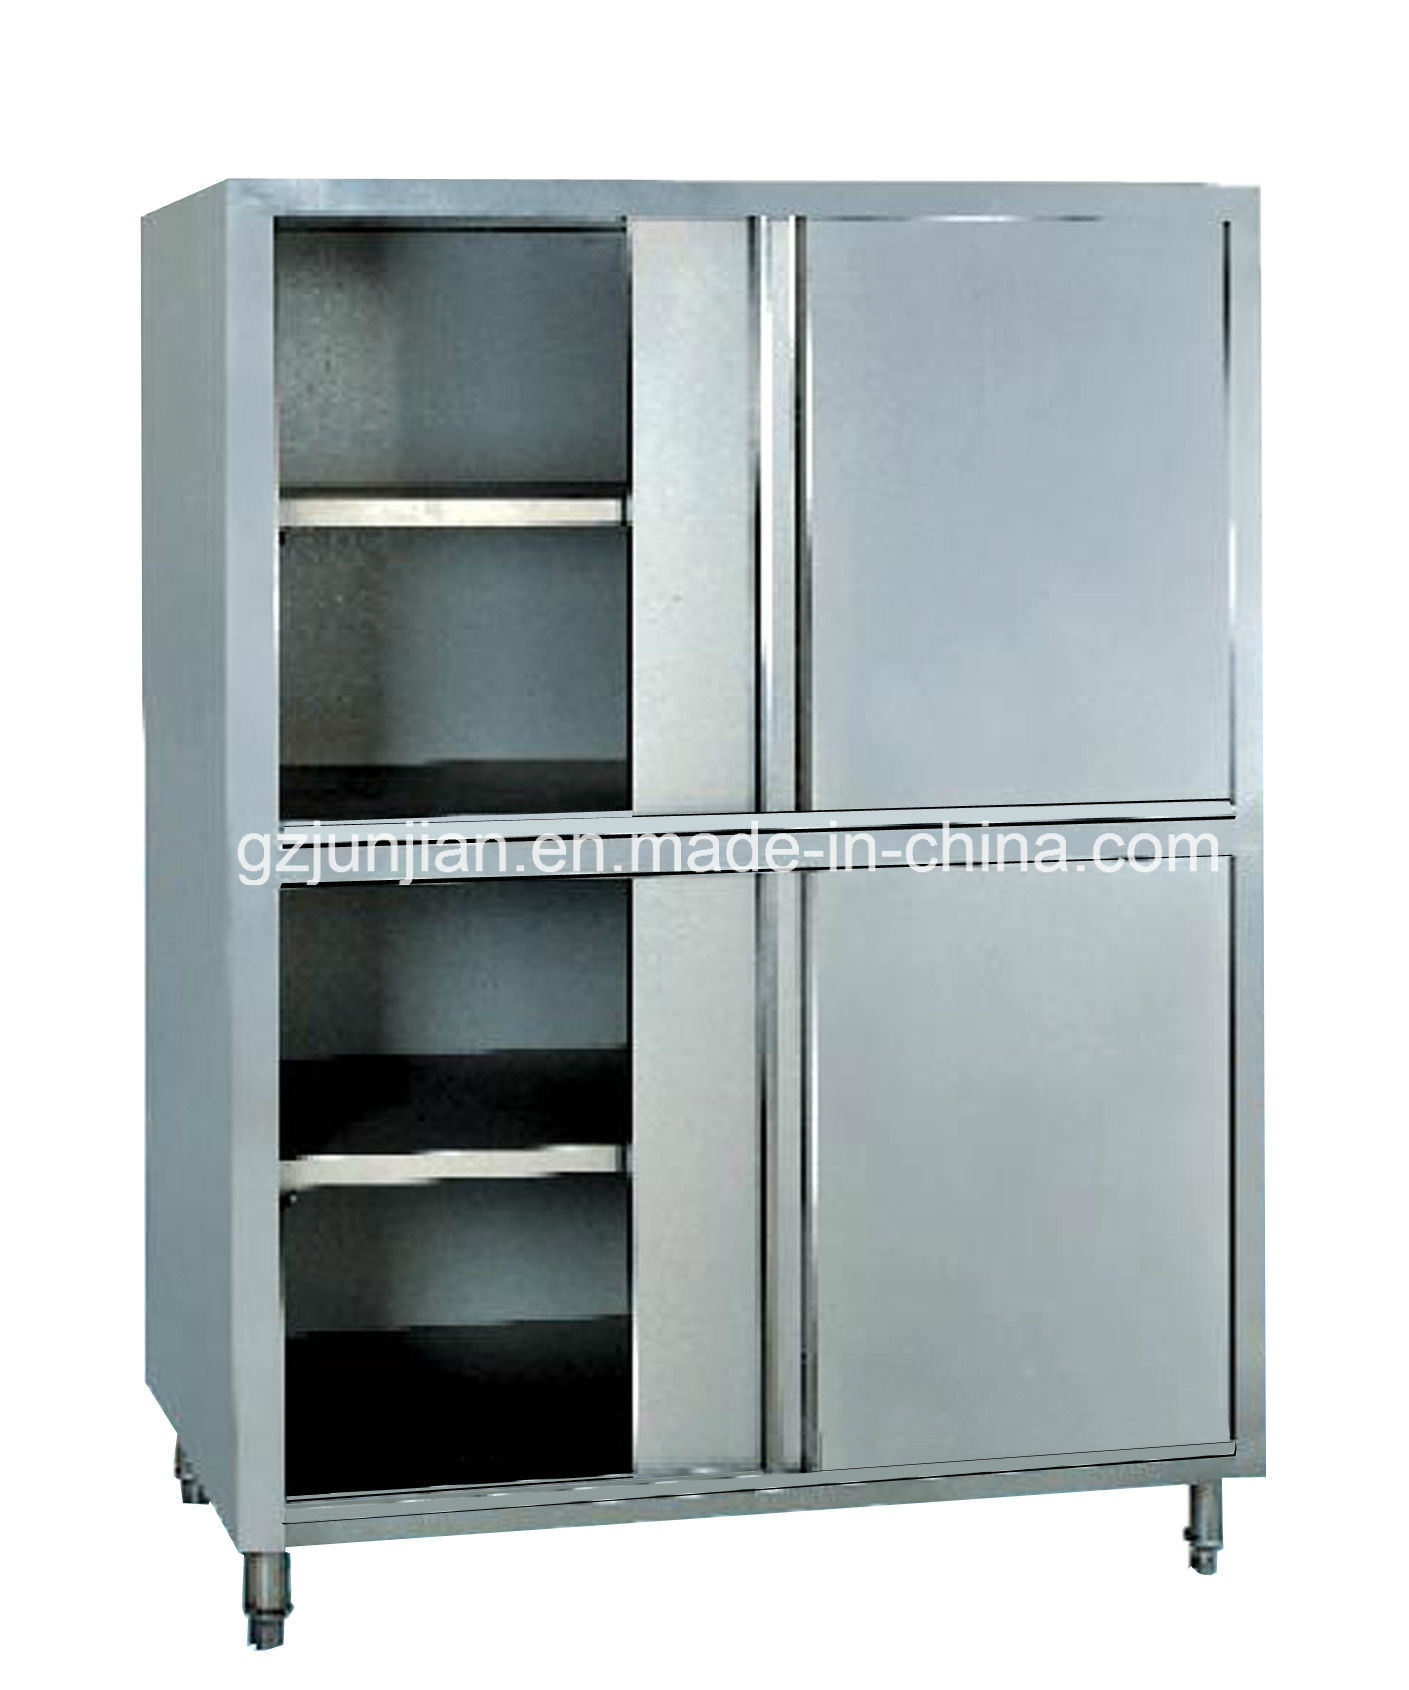 China Vertical Four Doors Storage Kitchen Work Table - China ...